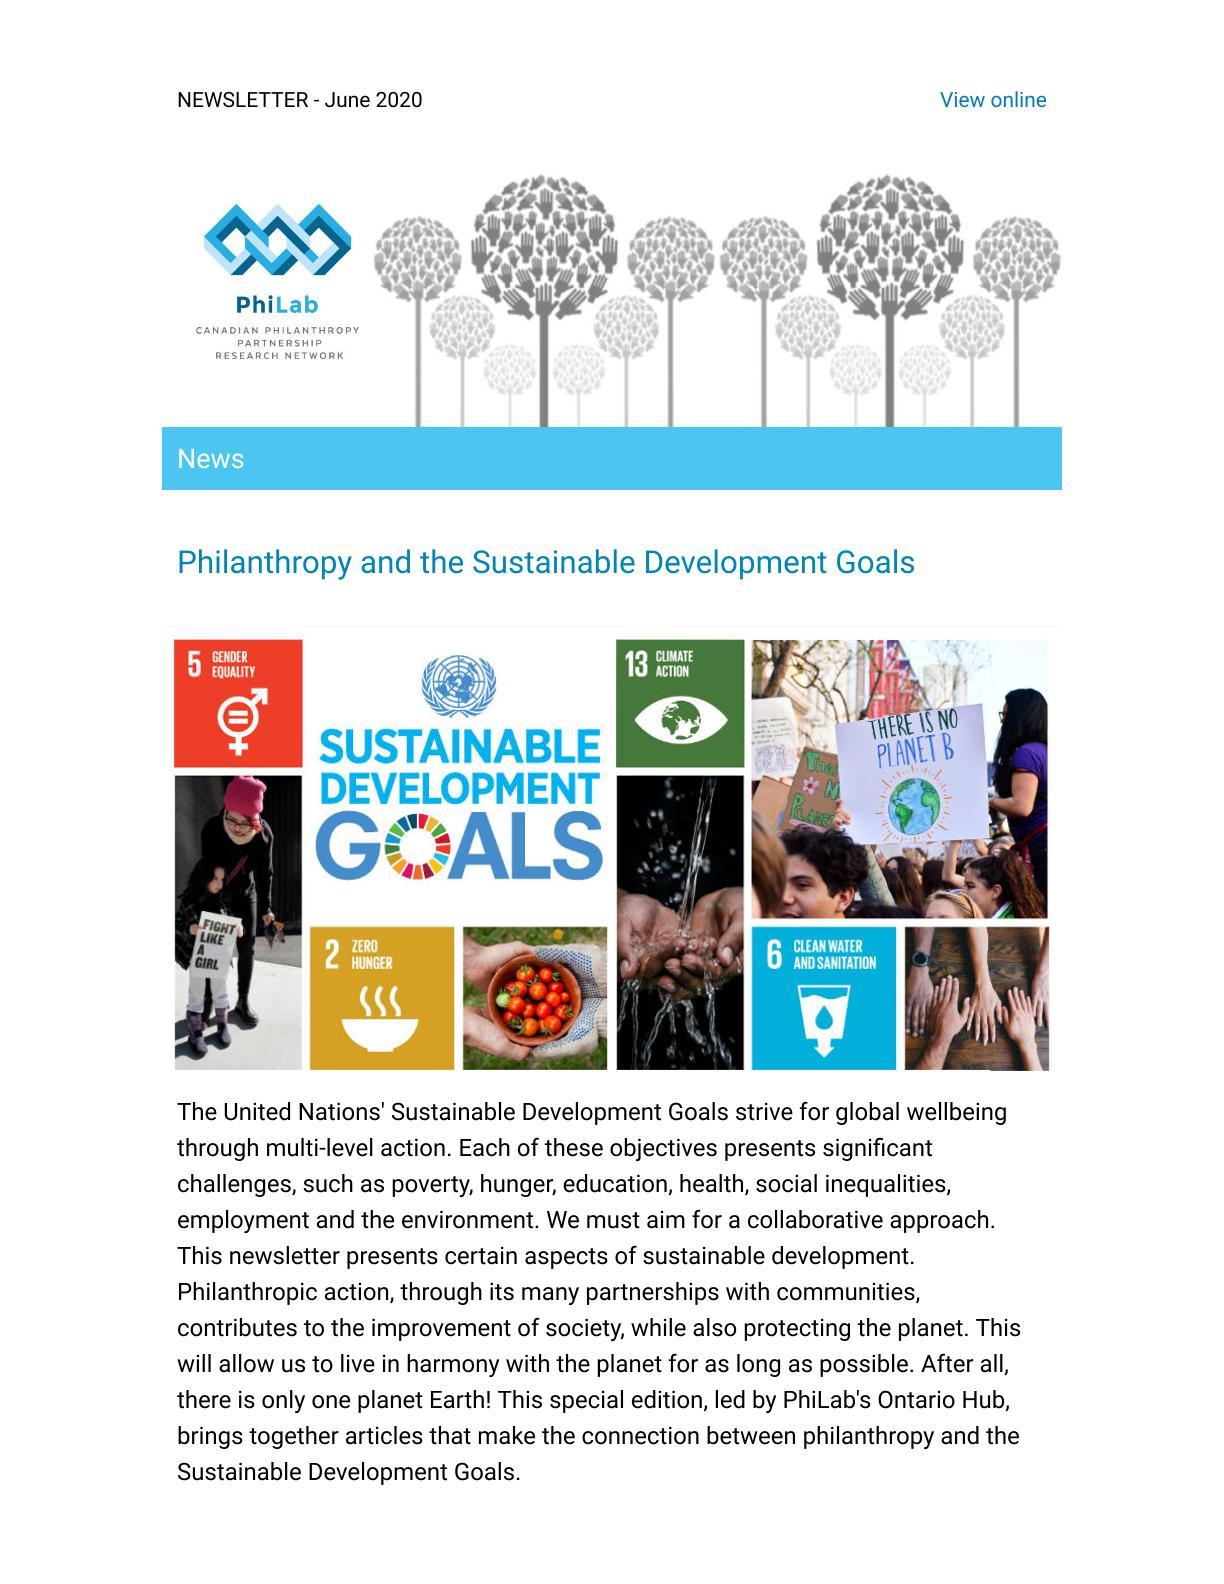 JUIN2020 - Philanthropy and the Sustainable Development Goals